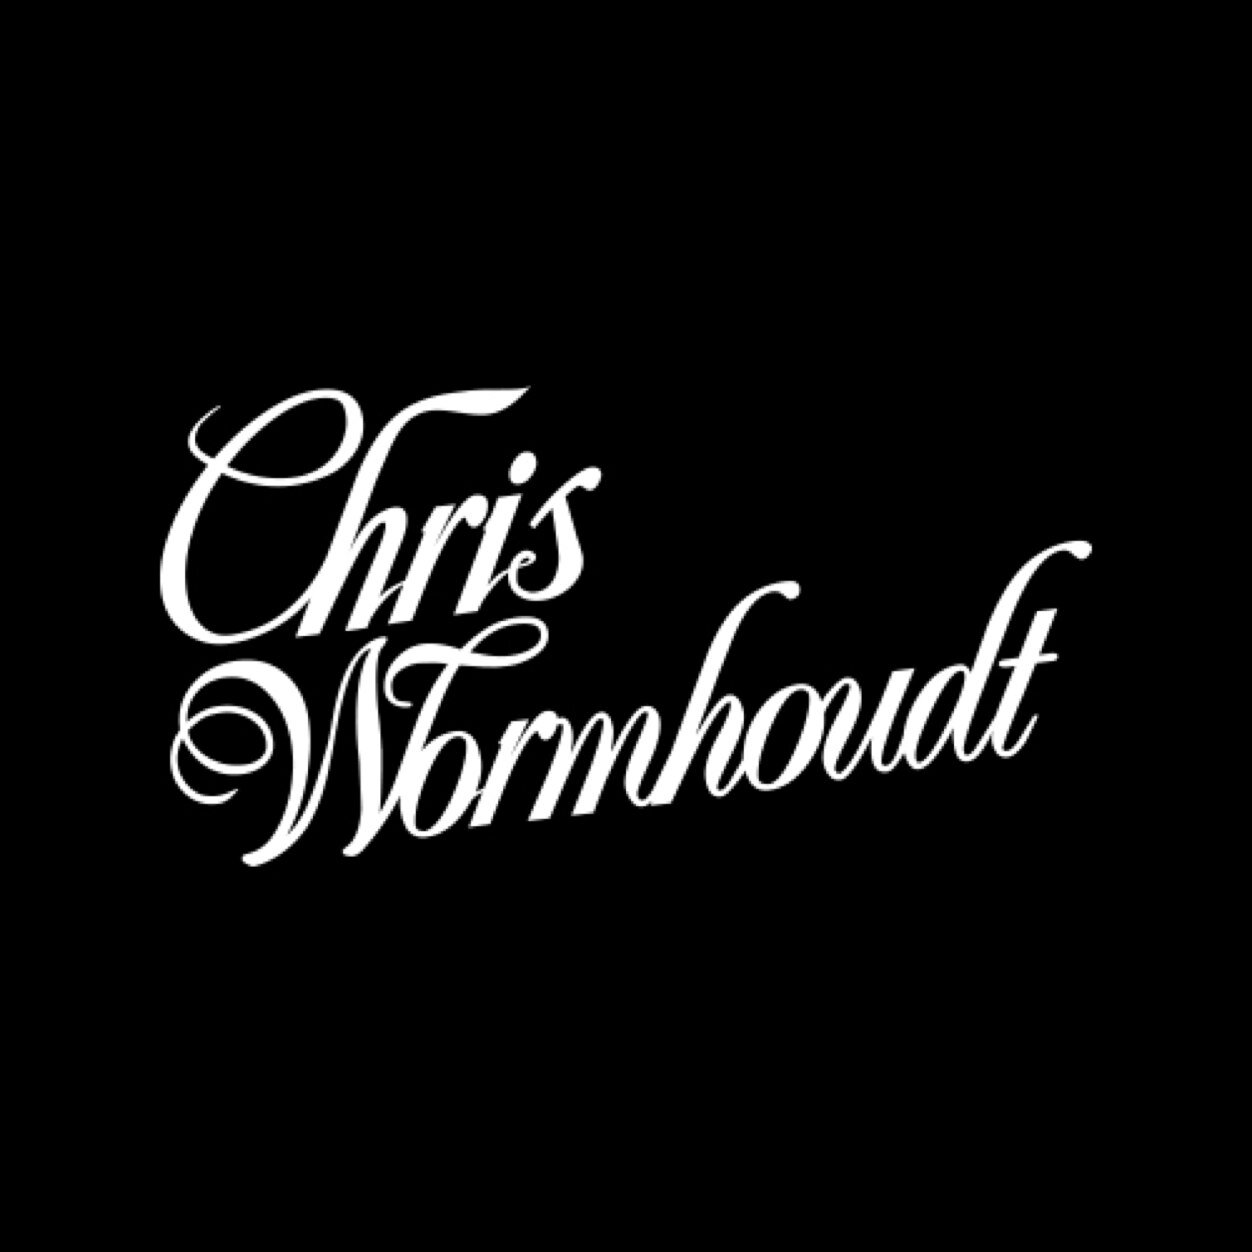 chriswormhoudt